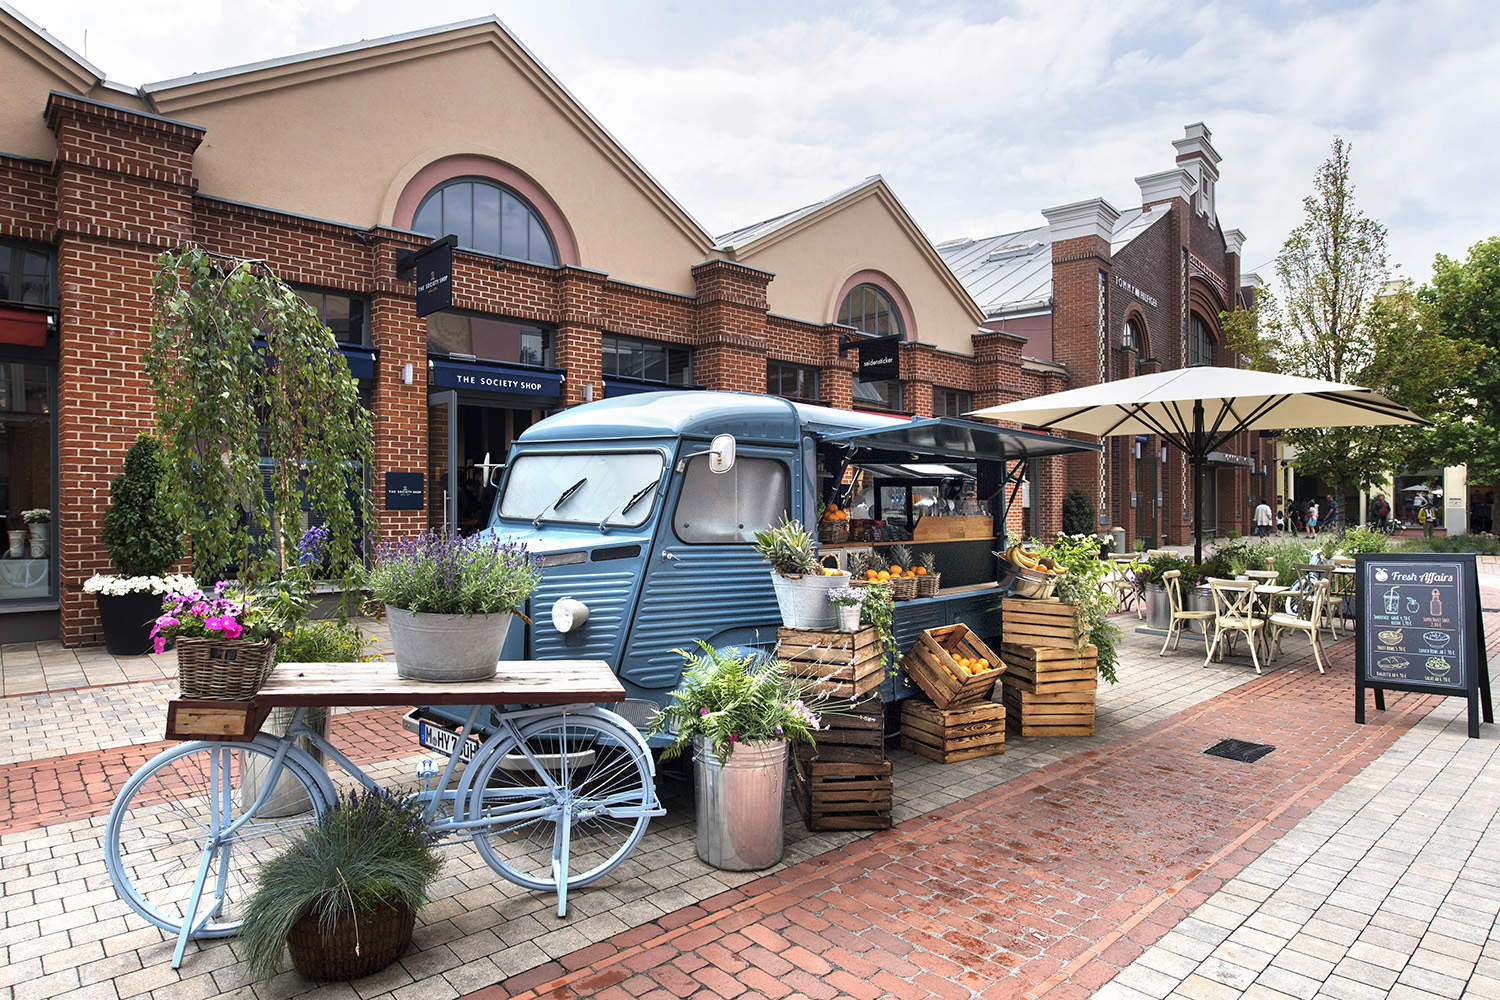 chic outlet shopping experience at ingolstadt village